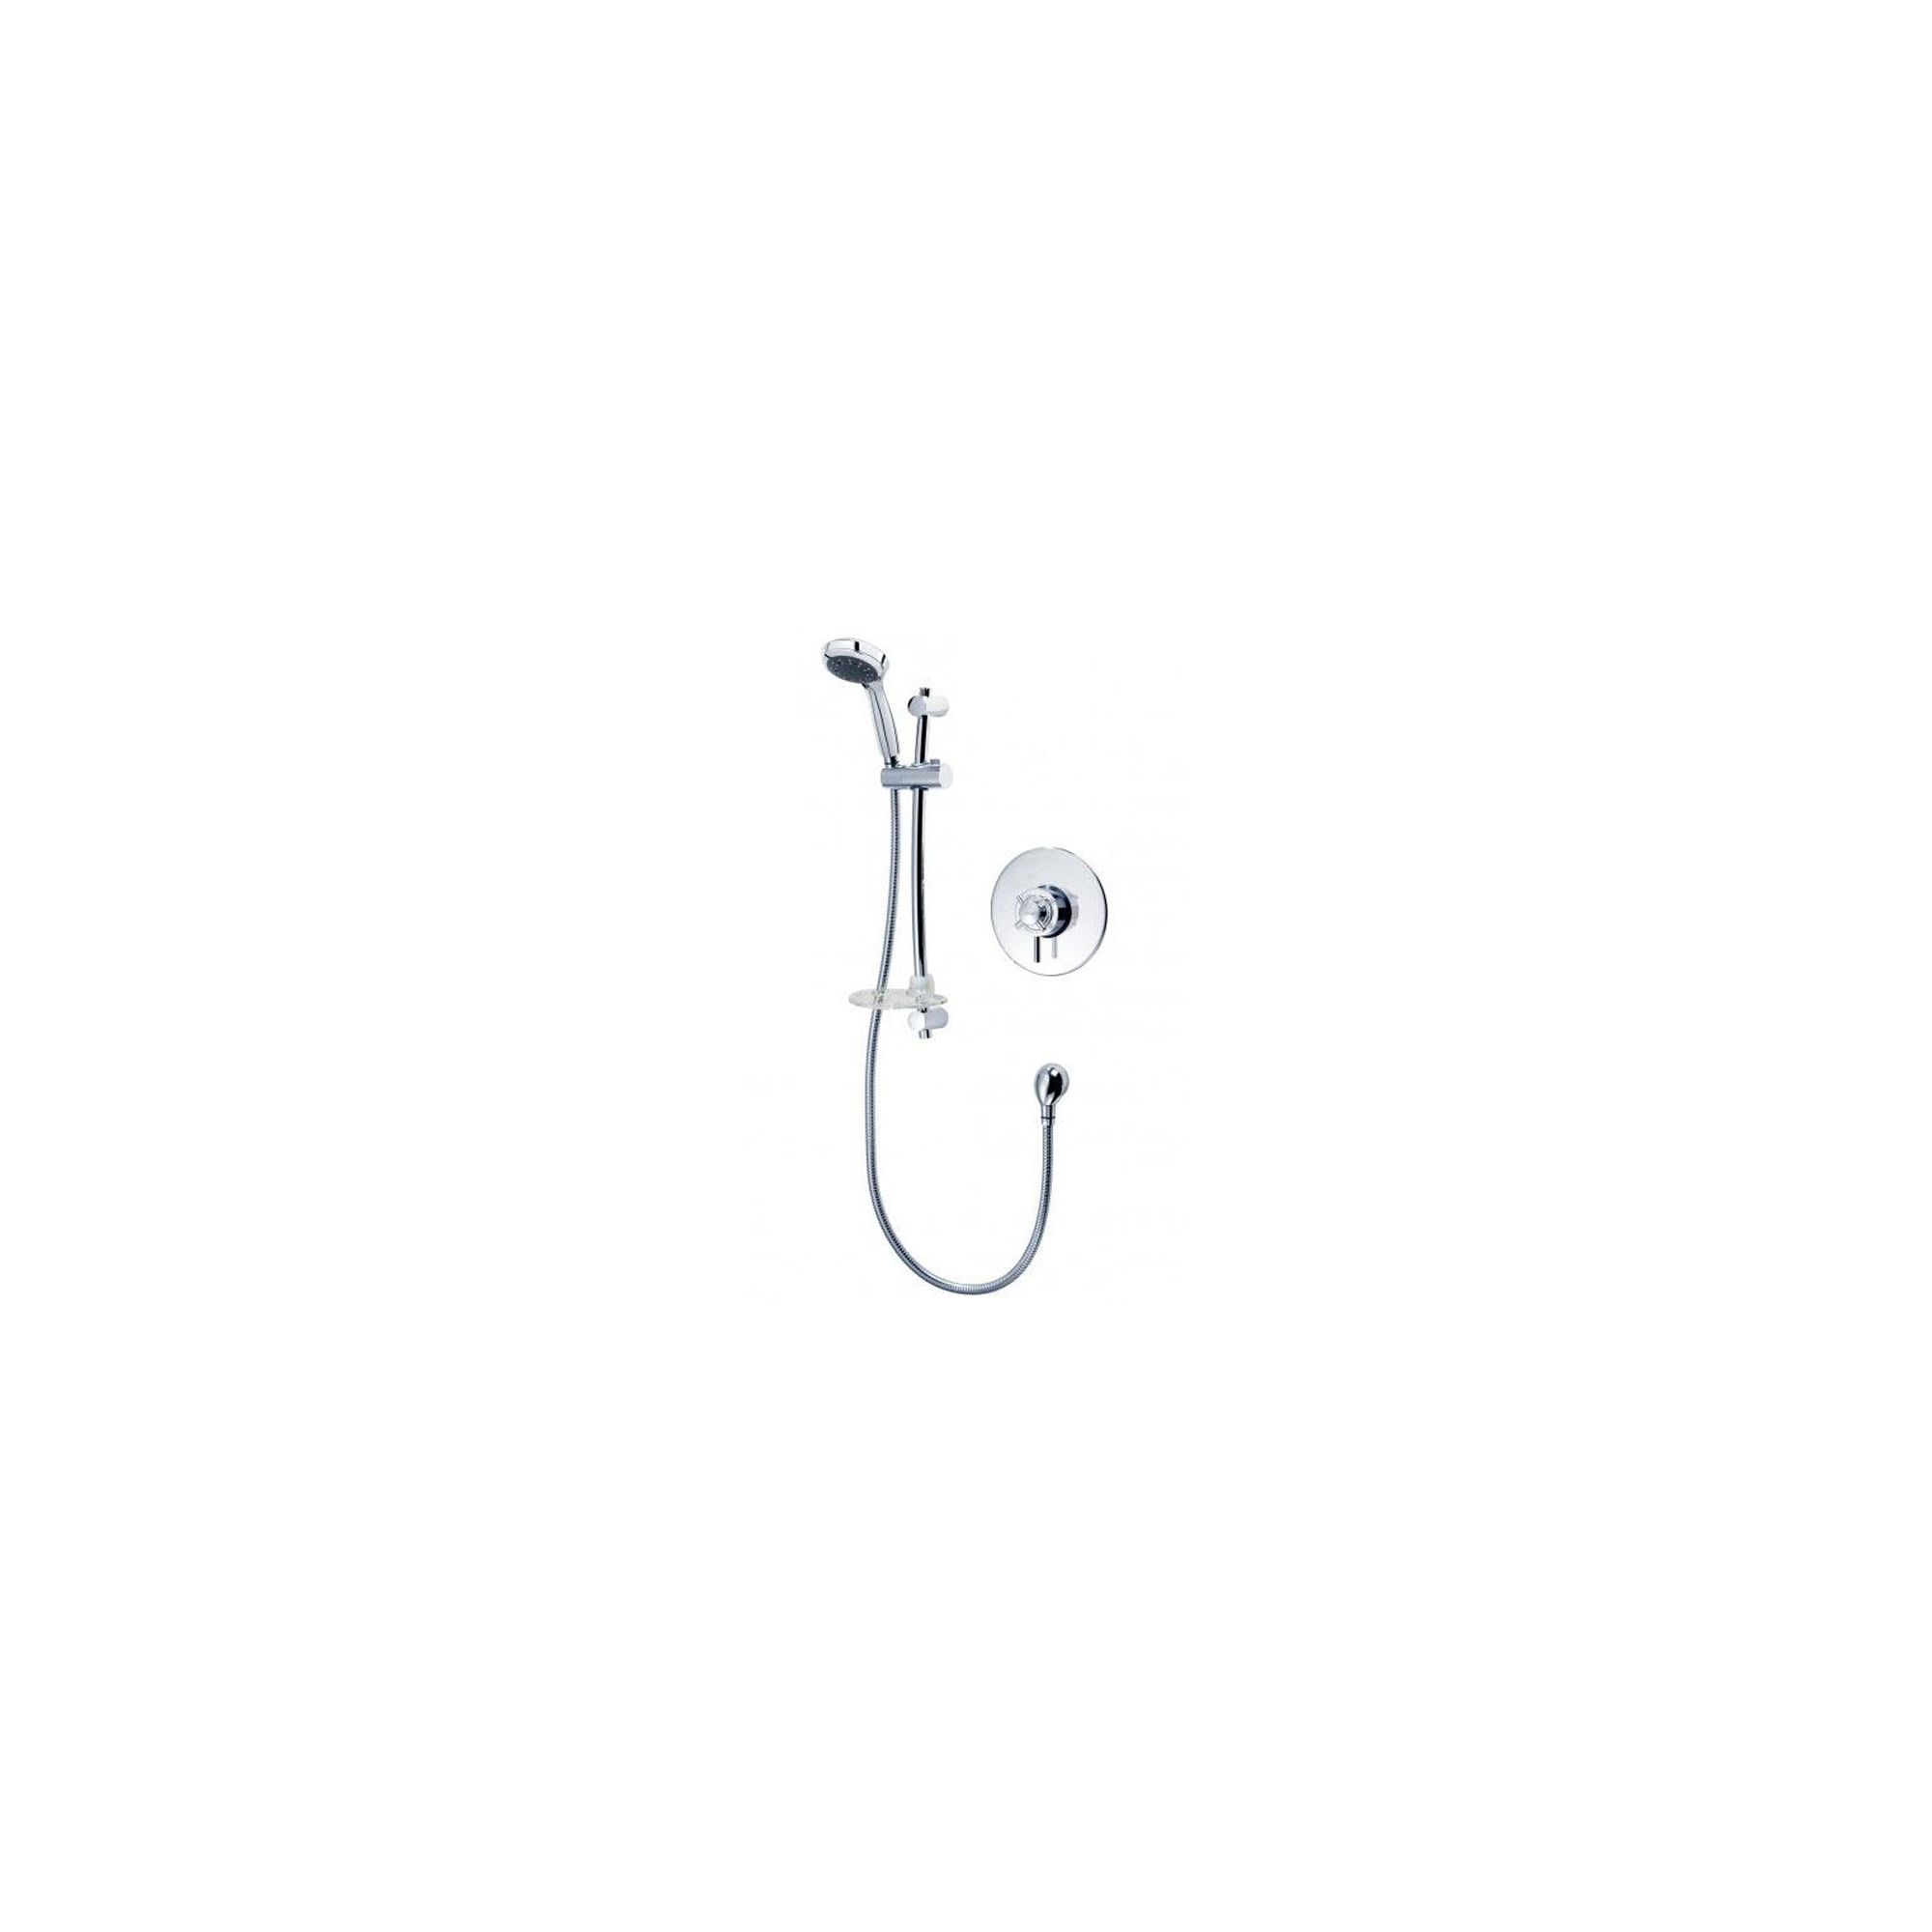 Triton Mersey Built-In Thermostatic Mixer Chrome at Tescos Direct